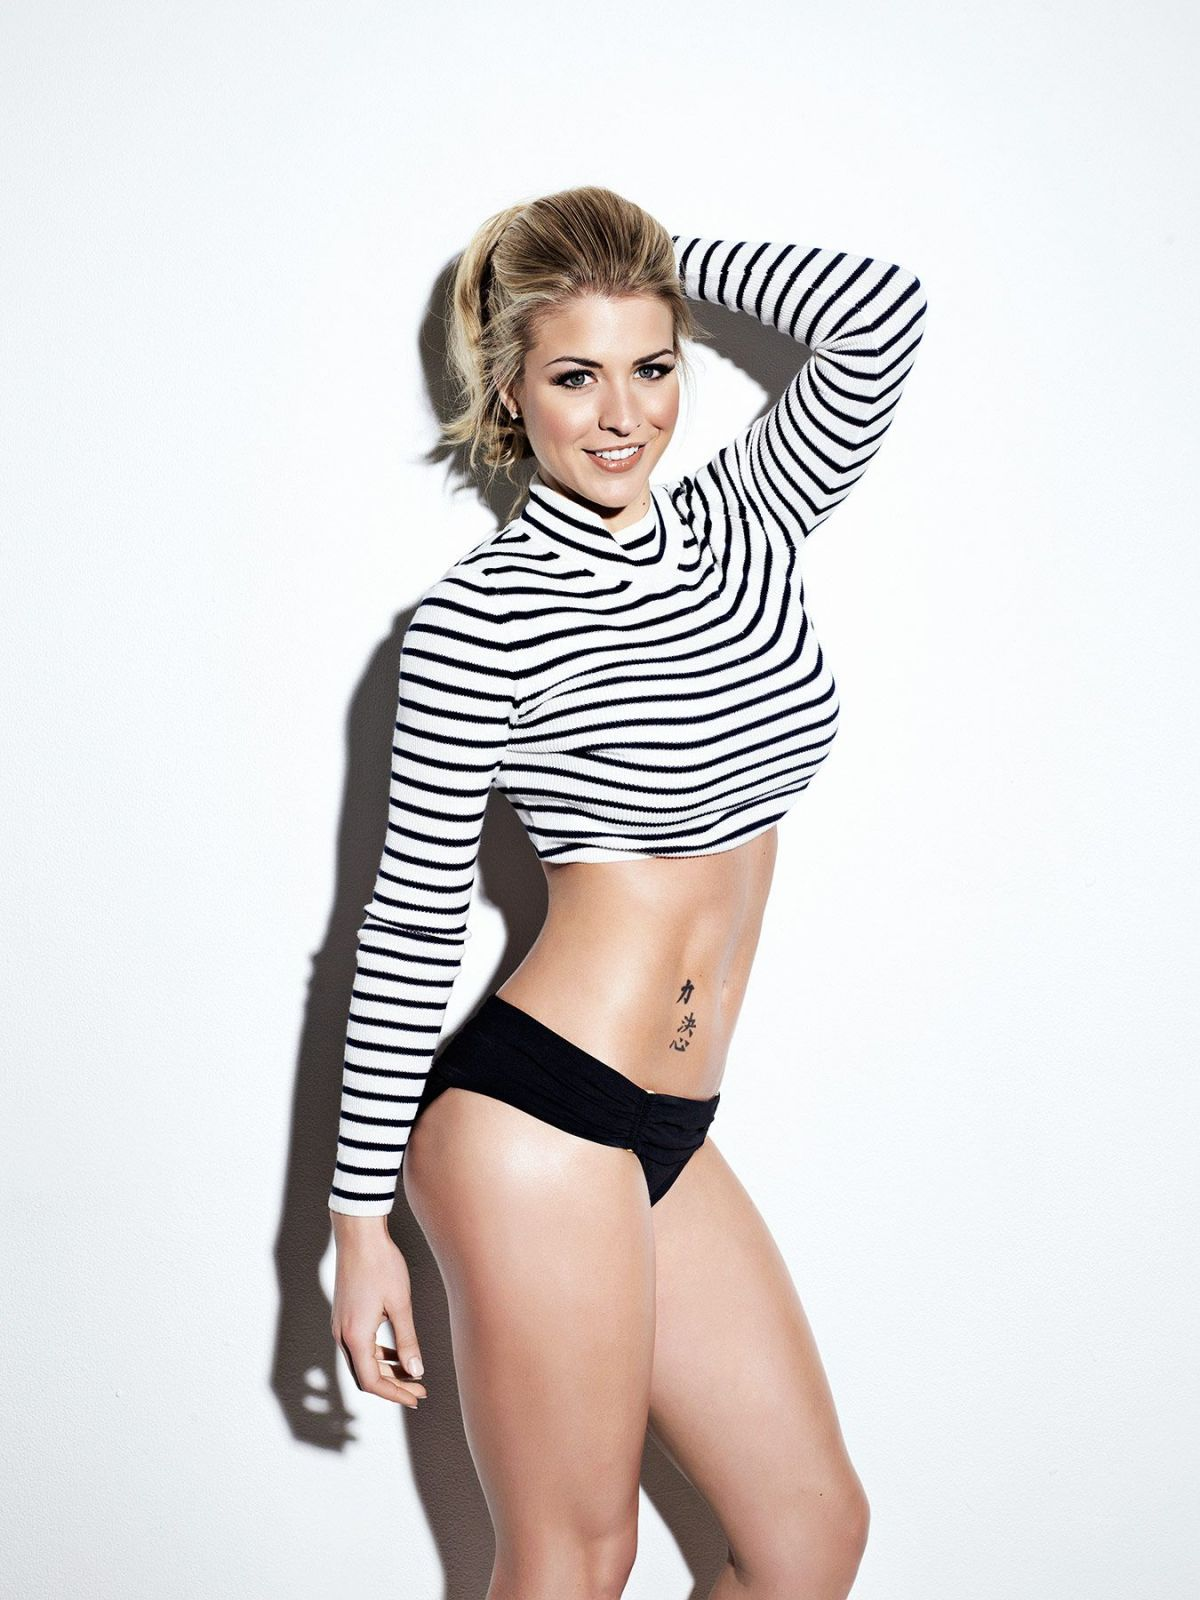 GEMMA ATKINSON by Zoe McConnell Photoshoot